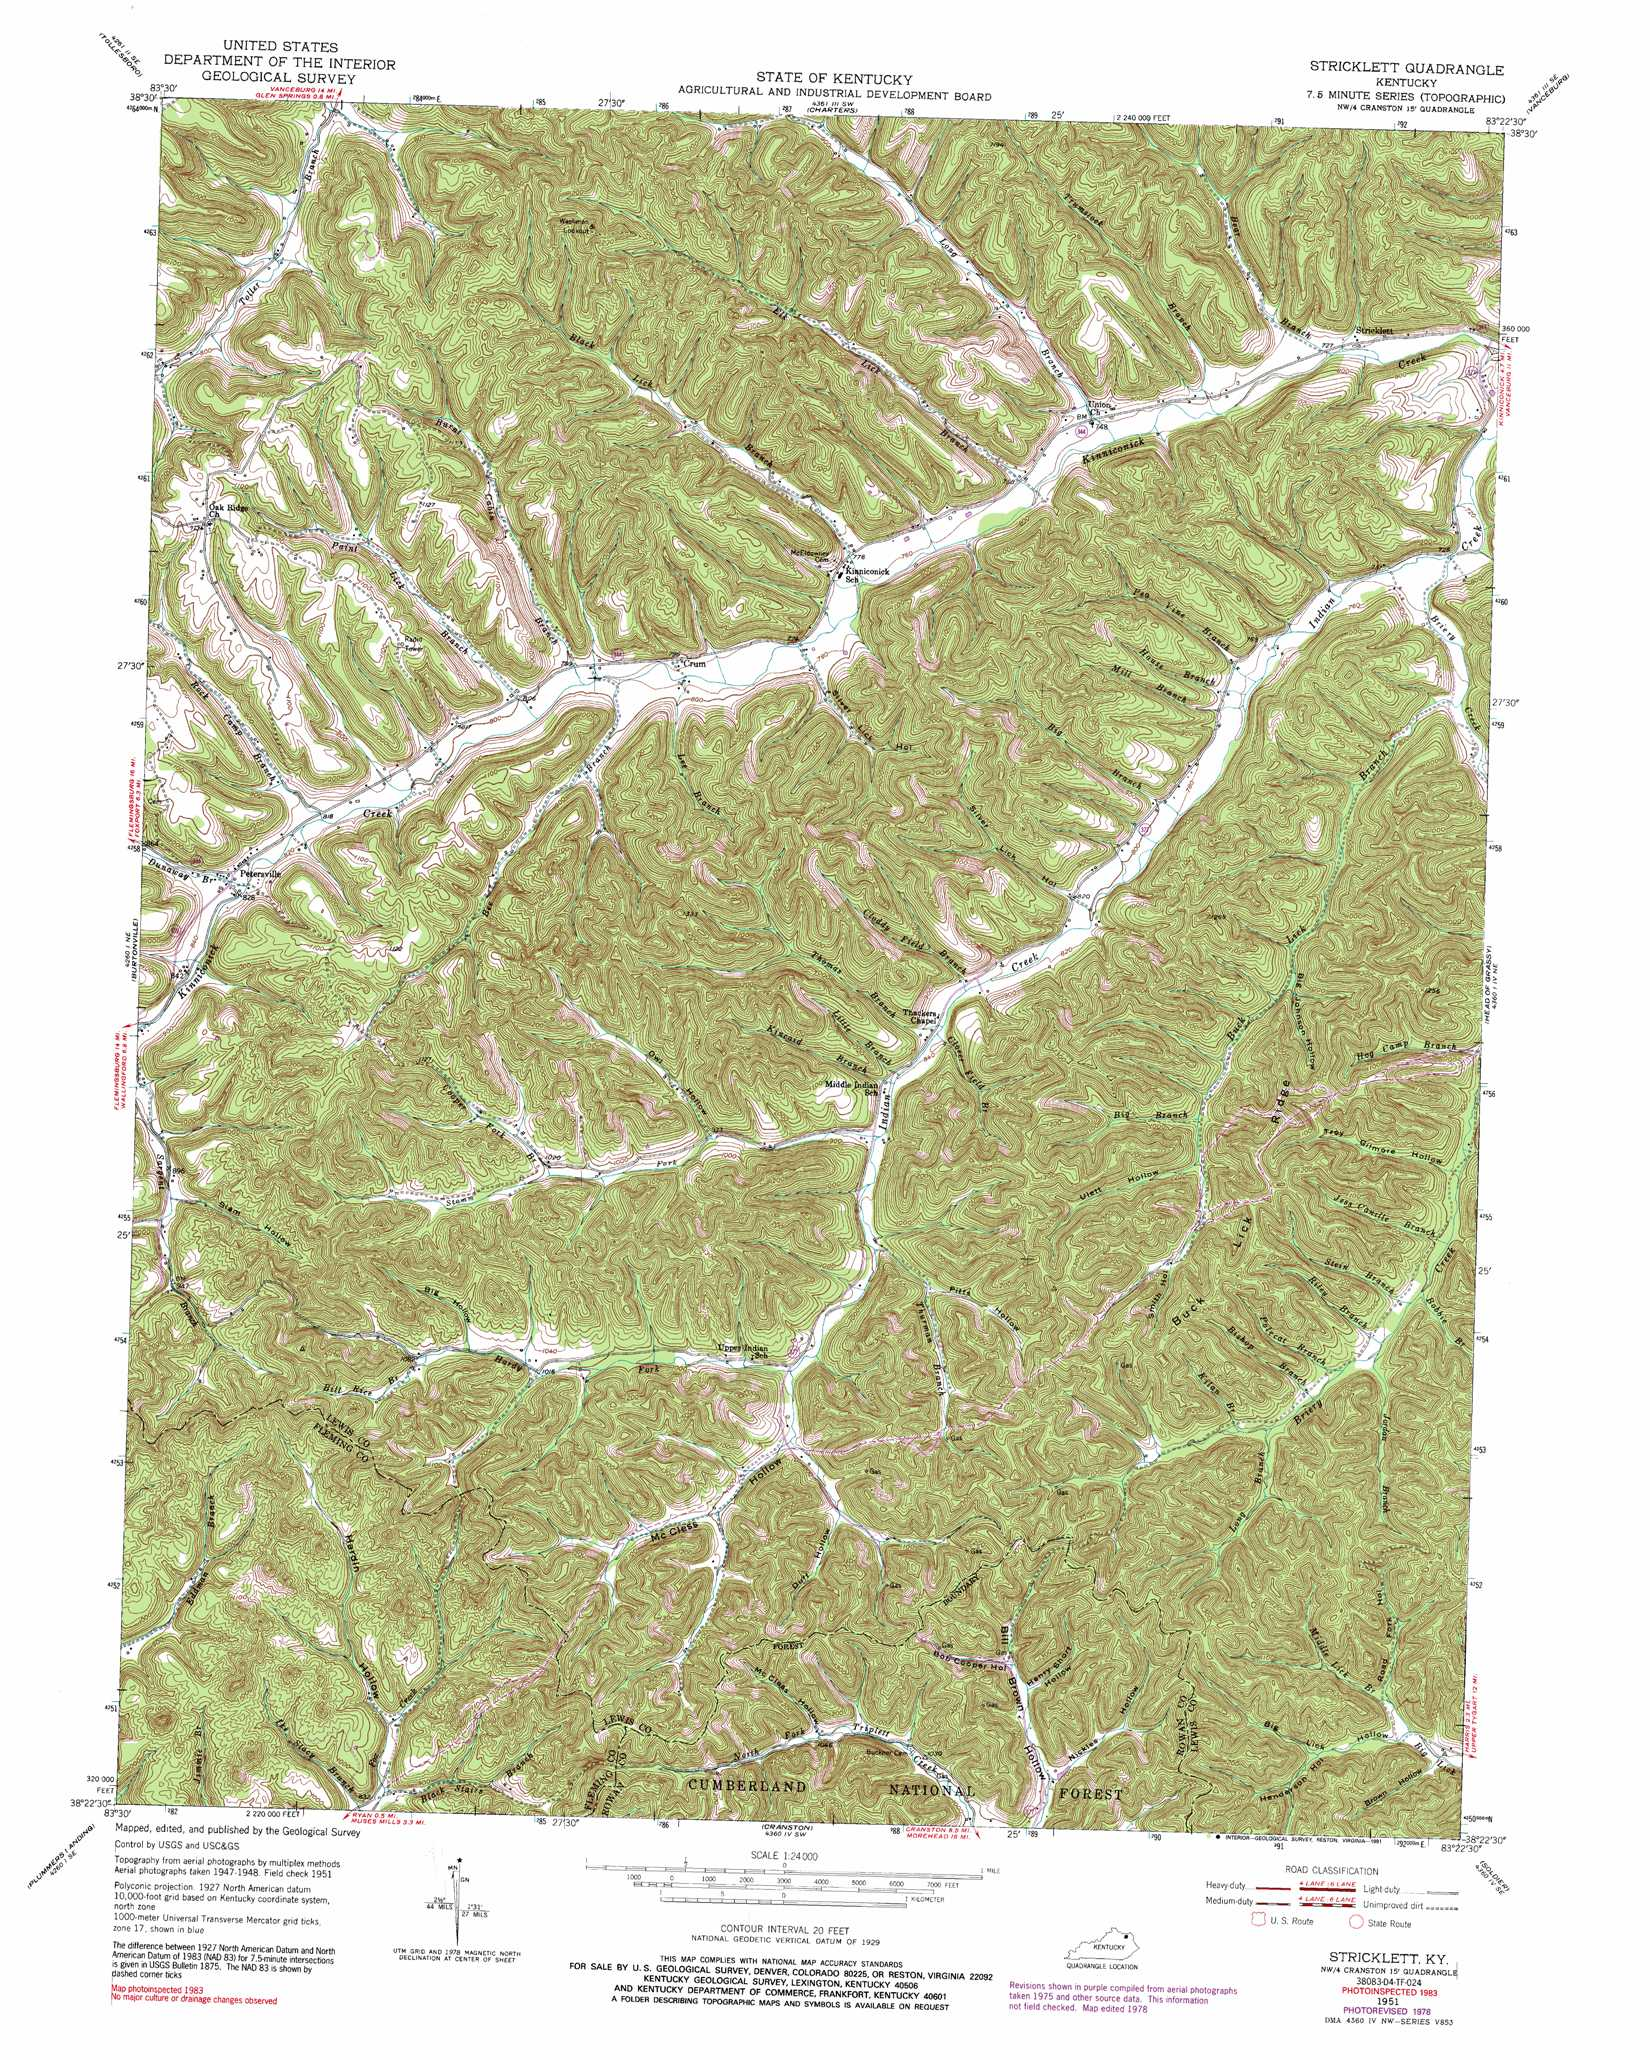 Stricklett Topographic Map KY  USGS Topo Quad 38083d4